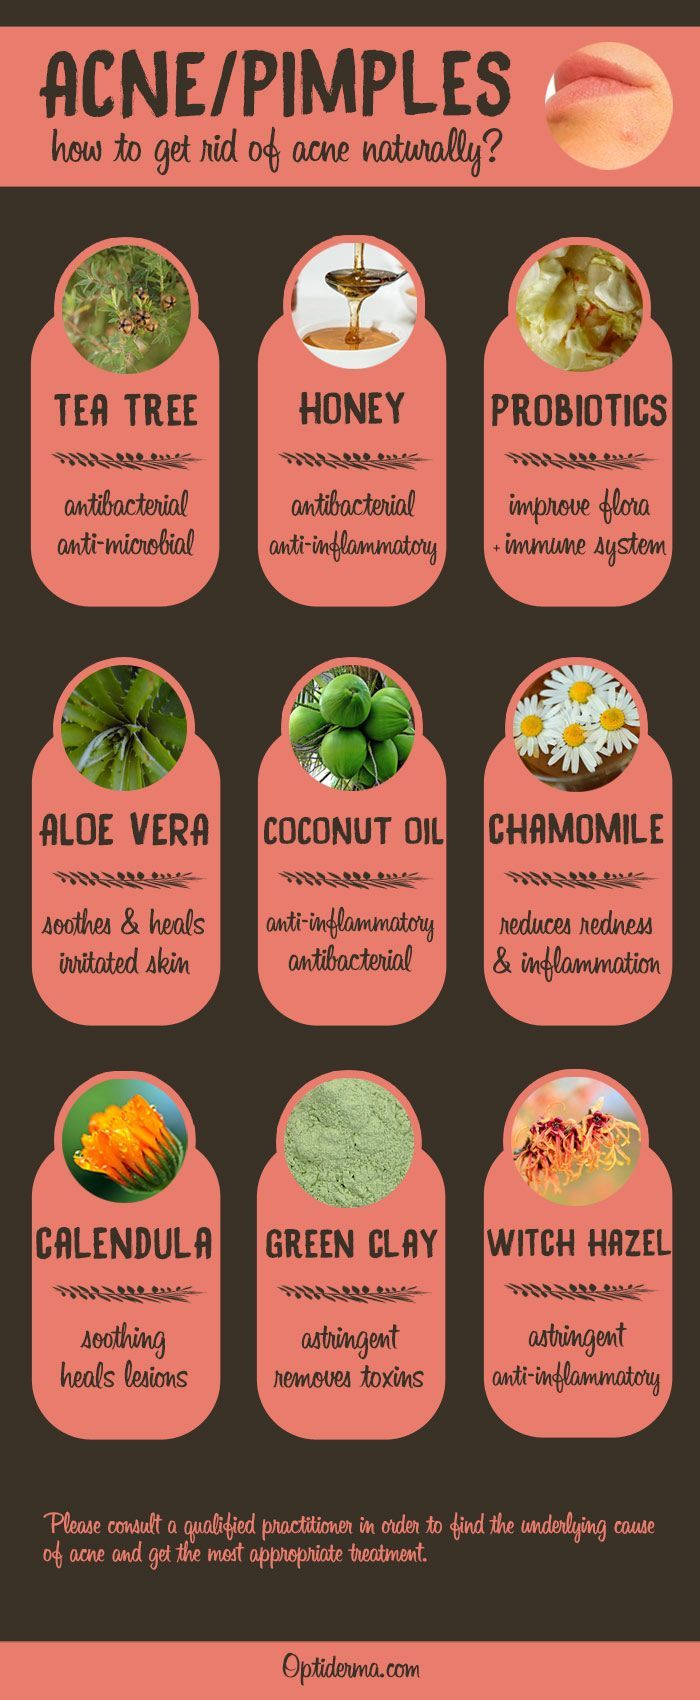 The Best Natural Remedies for Acne & Pimples (Infographic).  Try Tea Tree essential oil, manuka honey, probiotics, aloe vera, coconut oil, chamomile, calendula, green clay and witch hazel!   To get rid of acne once and for all, check this out: http://www.